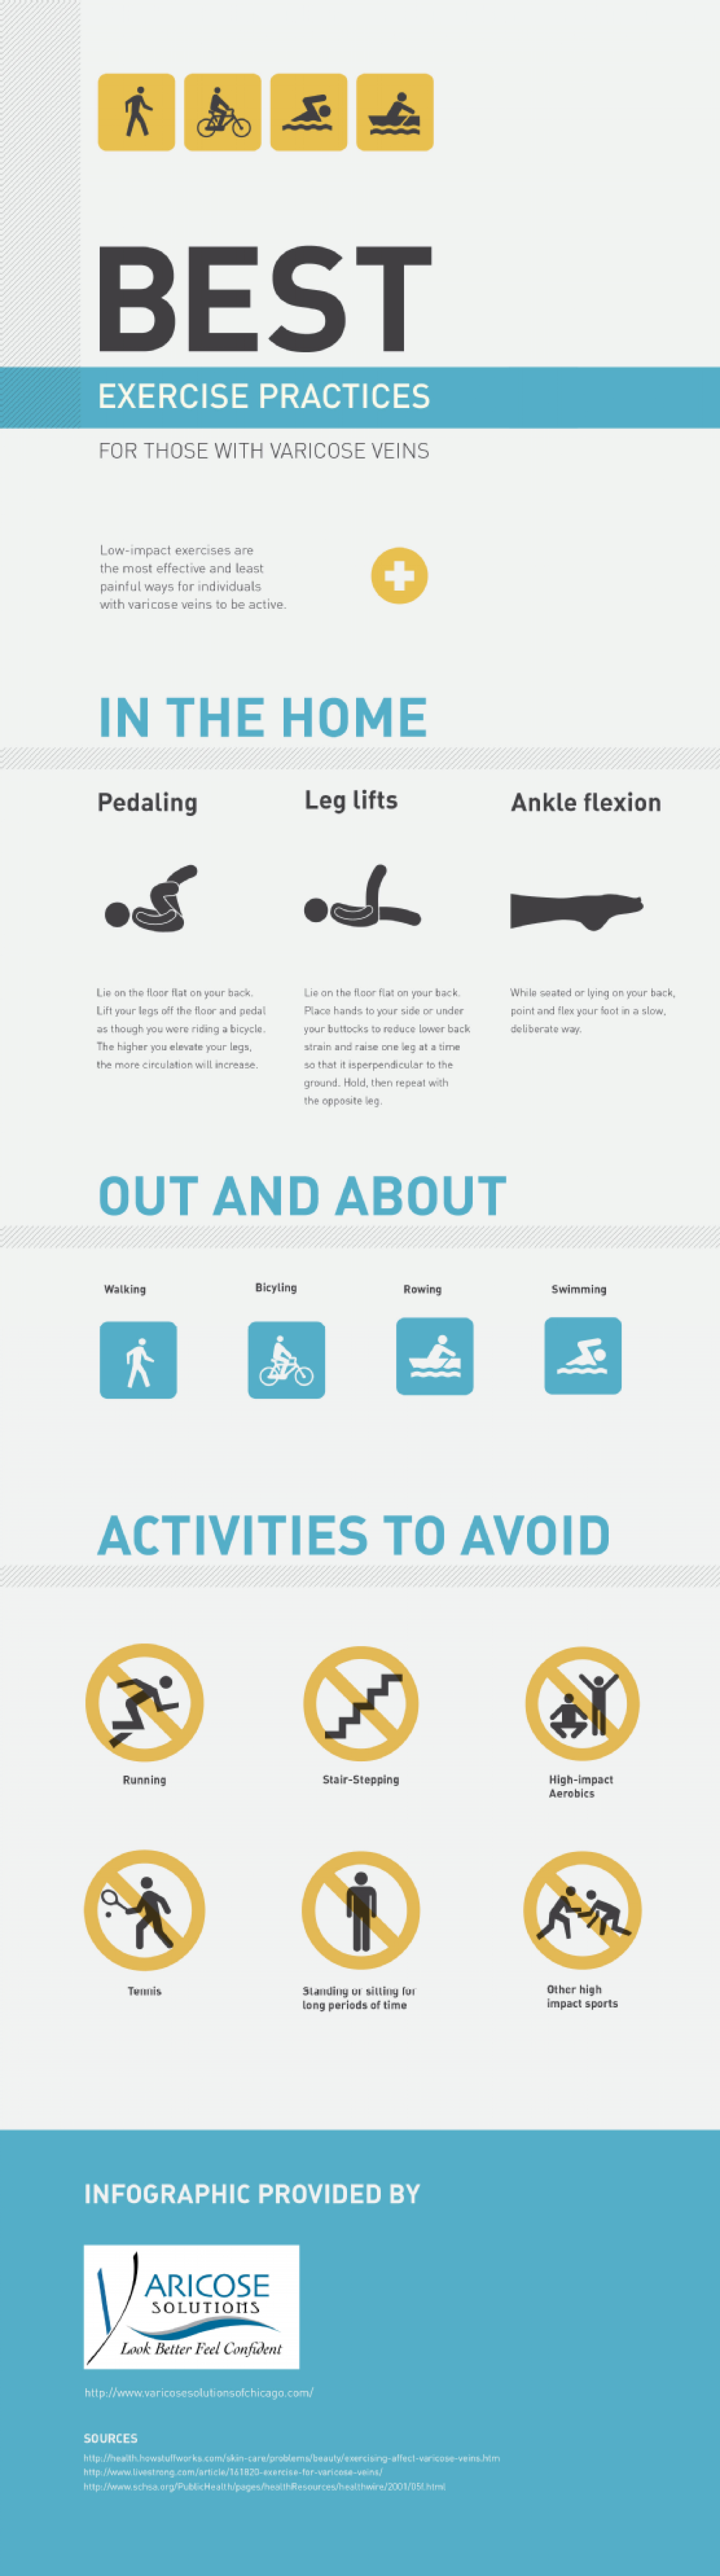 Best Exercise Practices for Those with Varicose Veins Infographic